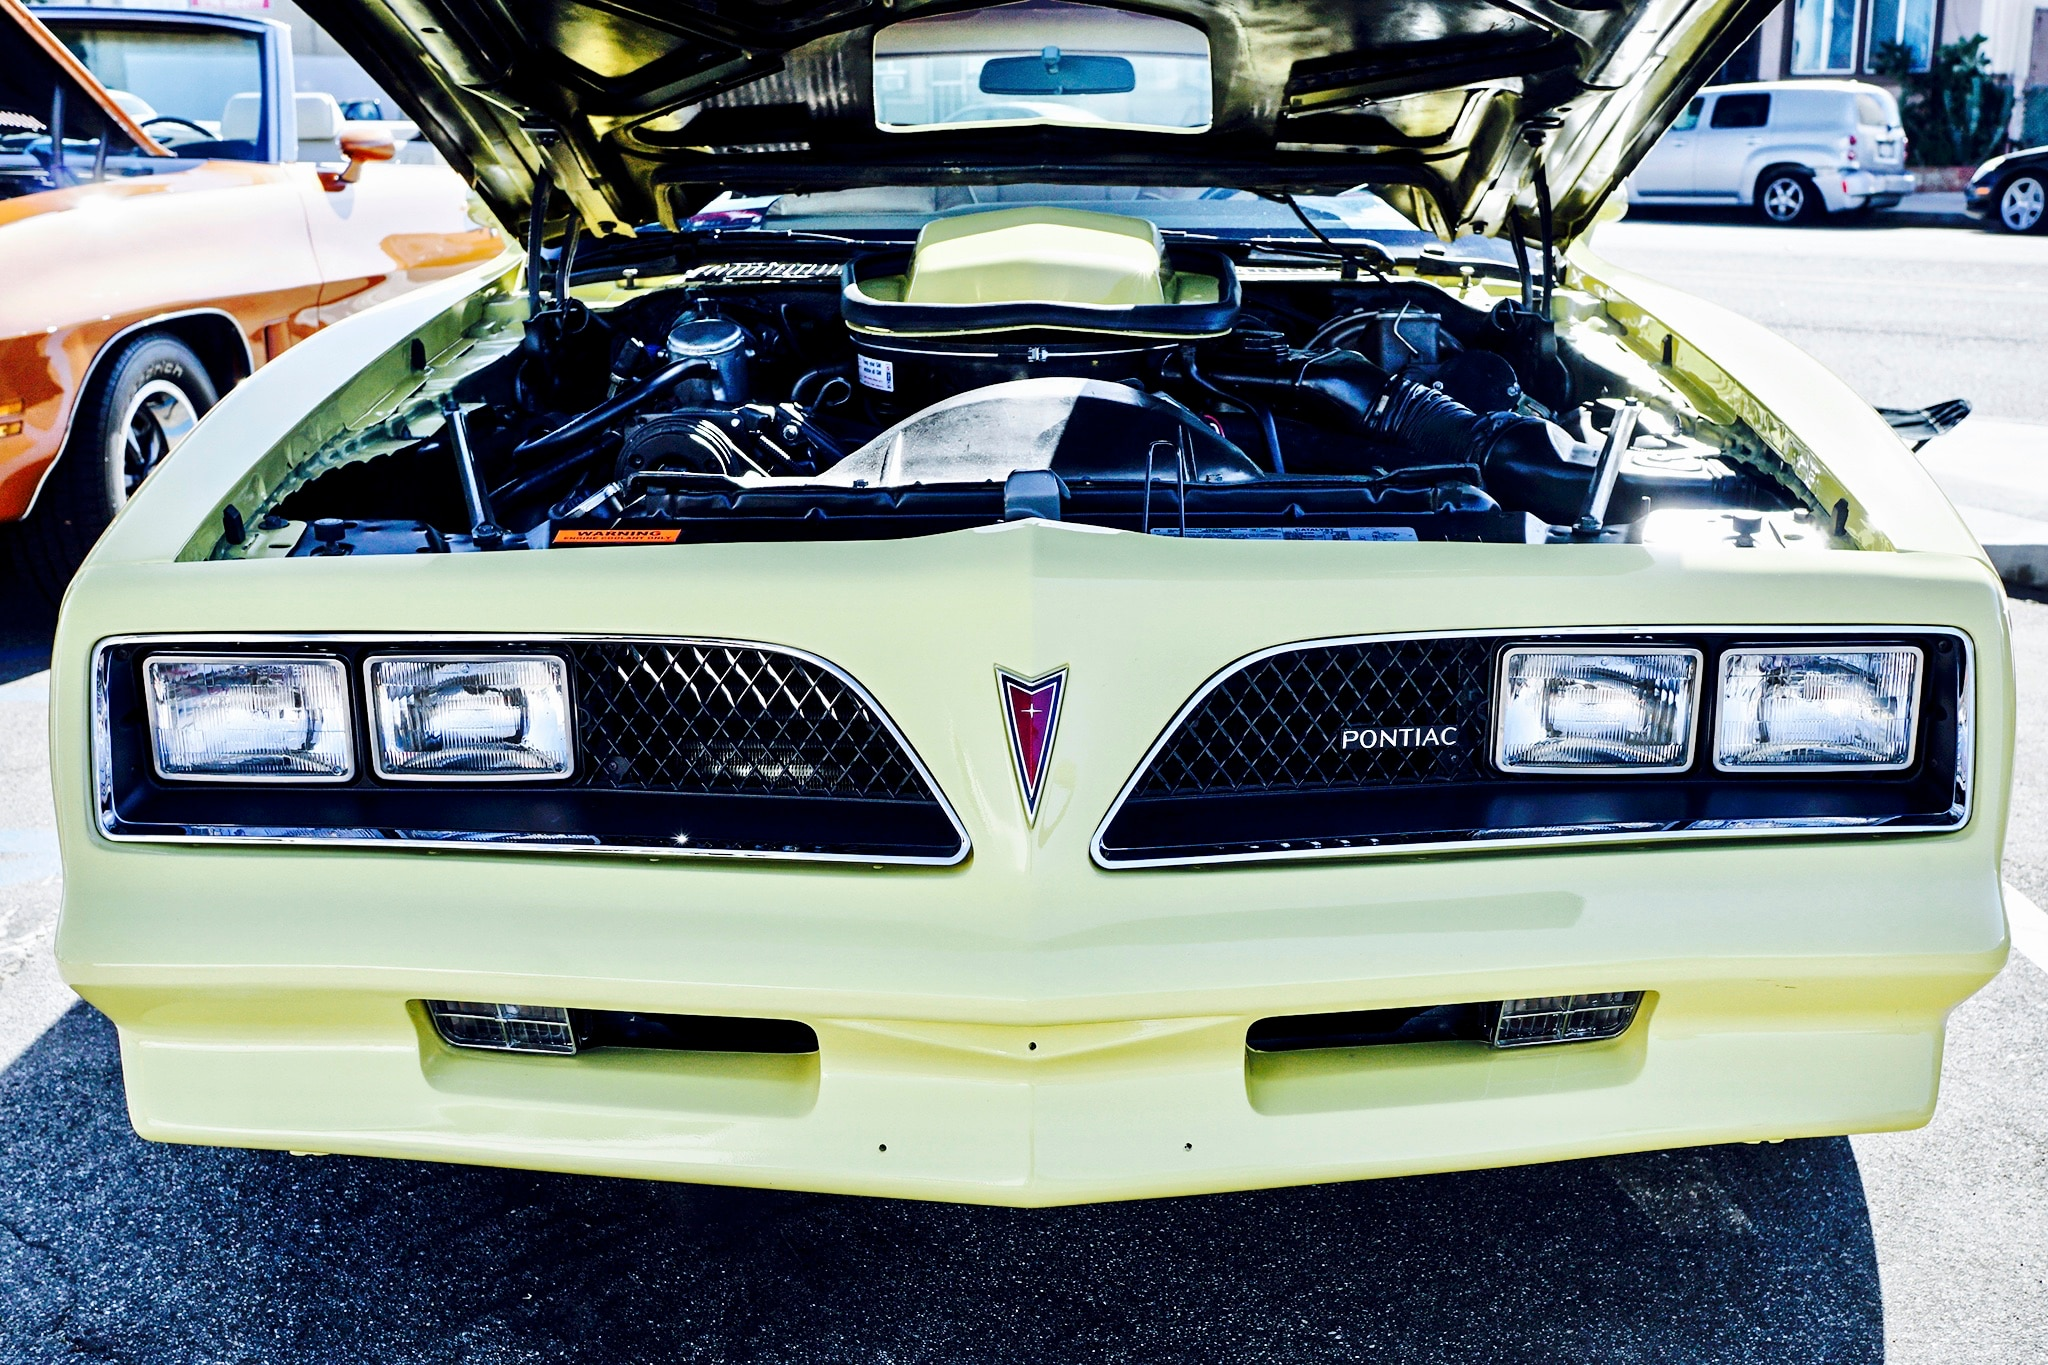 In Photos: 19th Annual Show 'N' Shine at Fullerton Airport